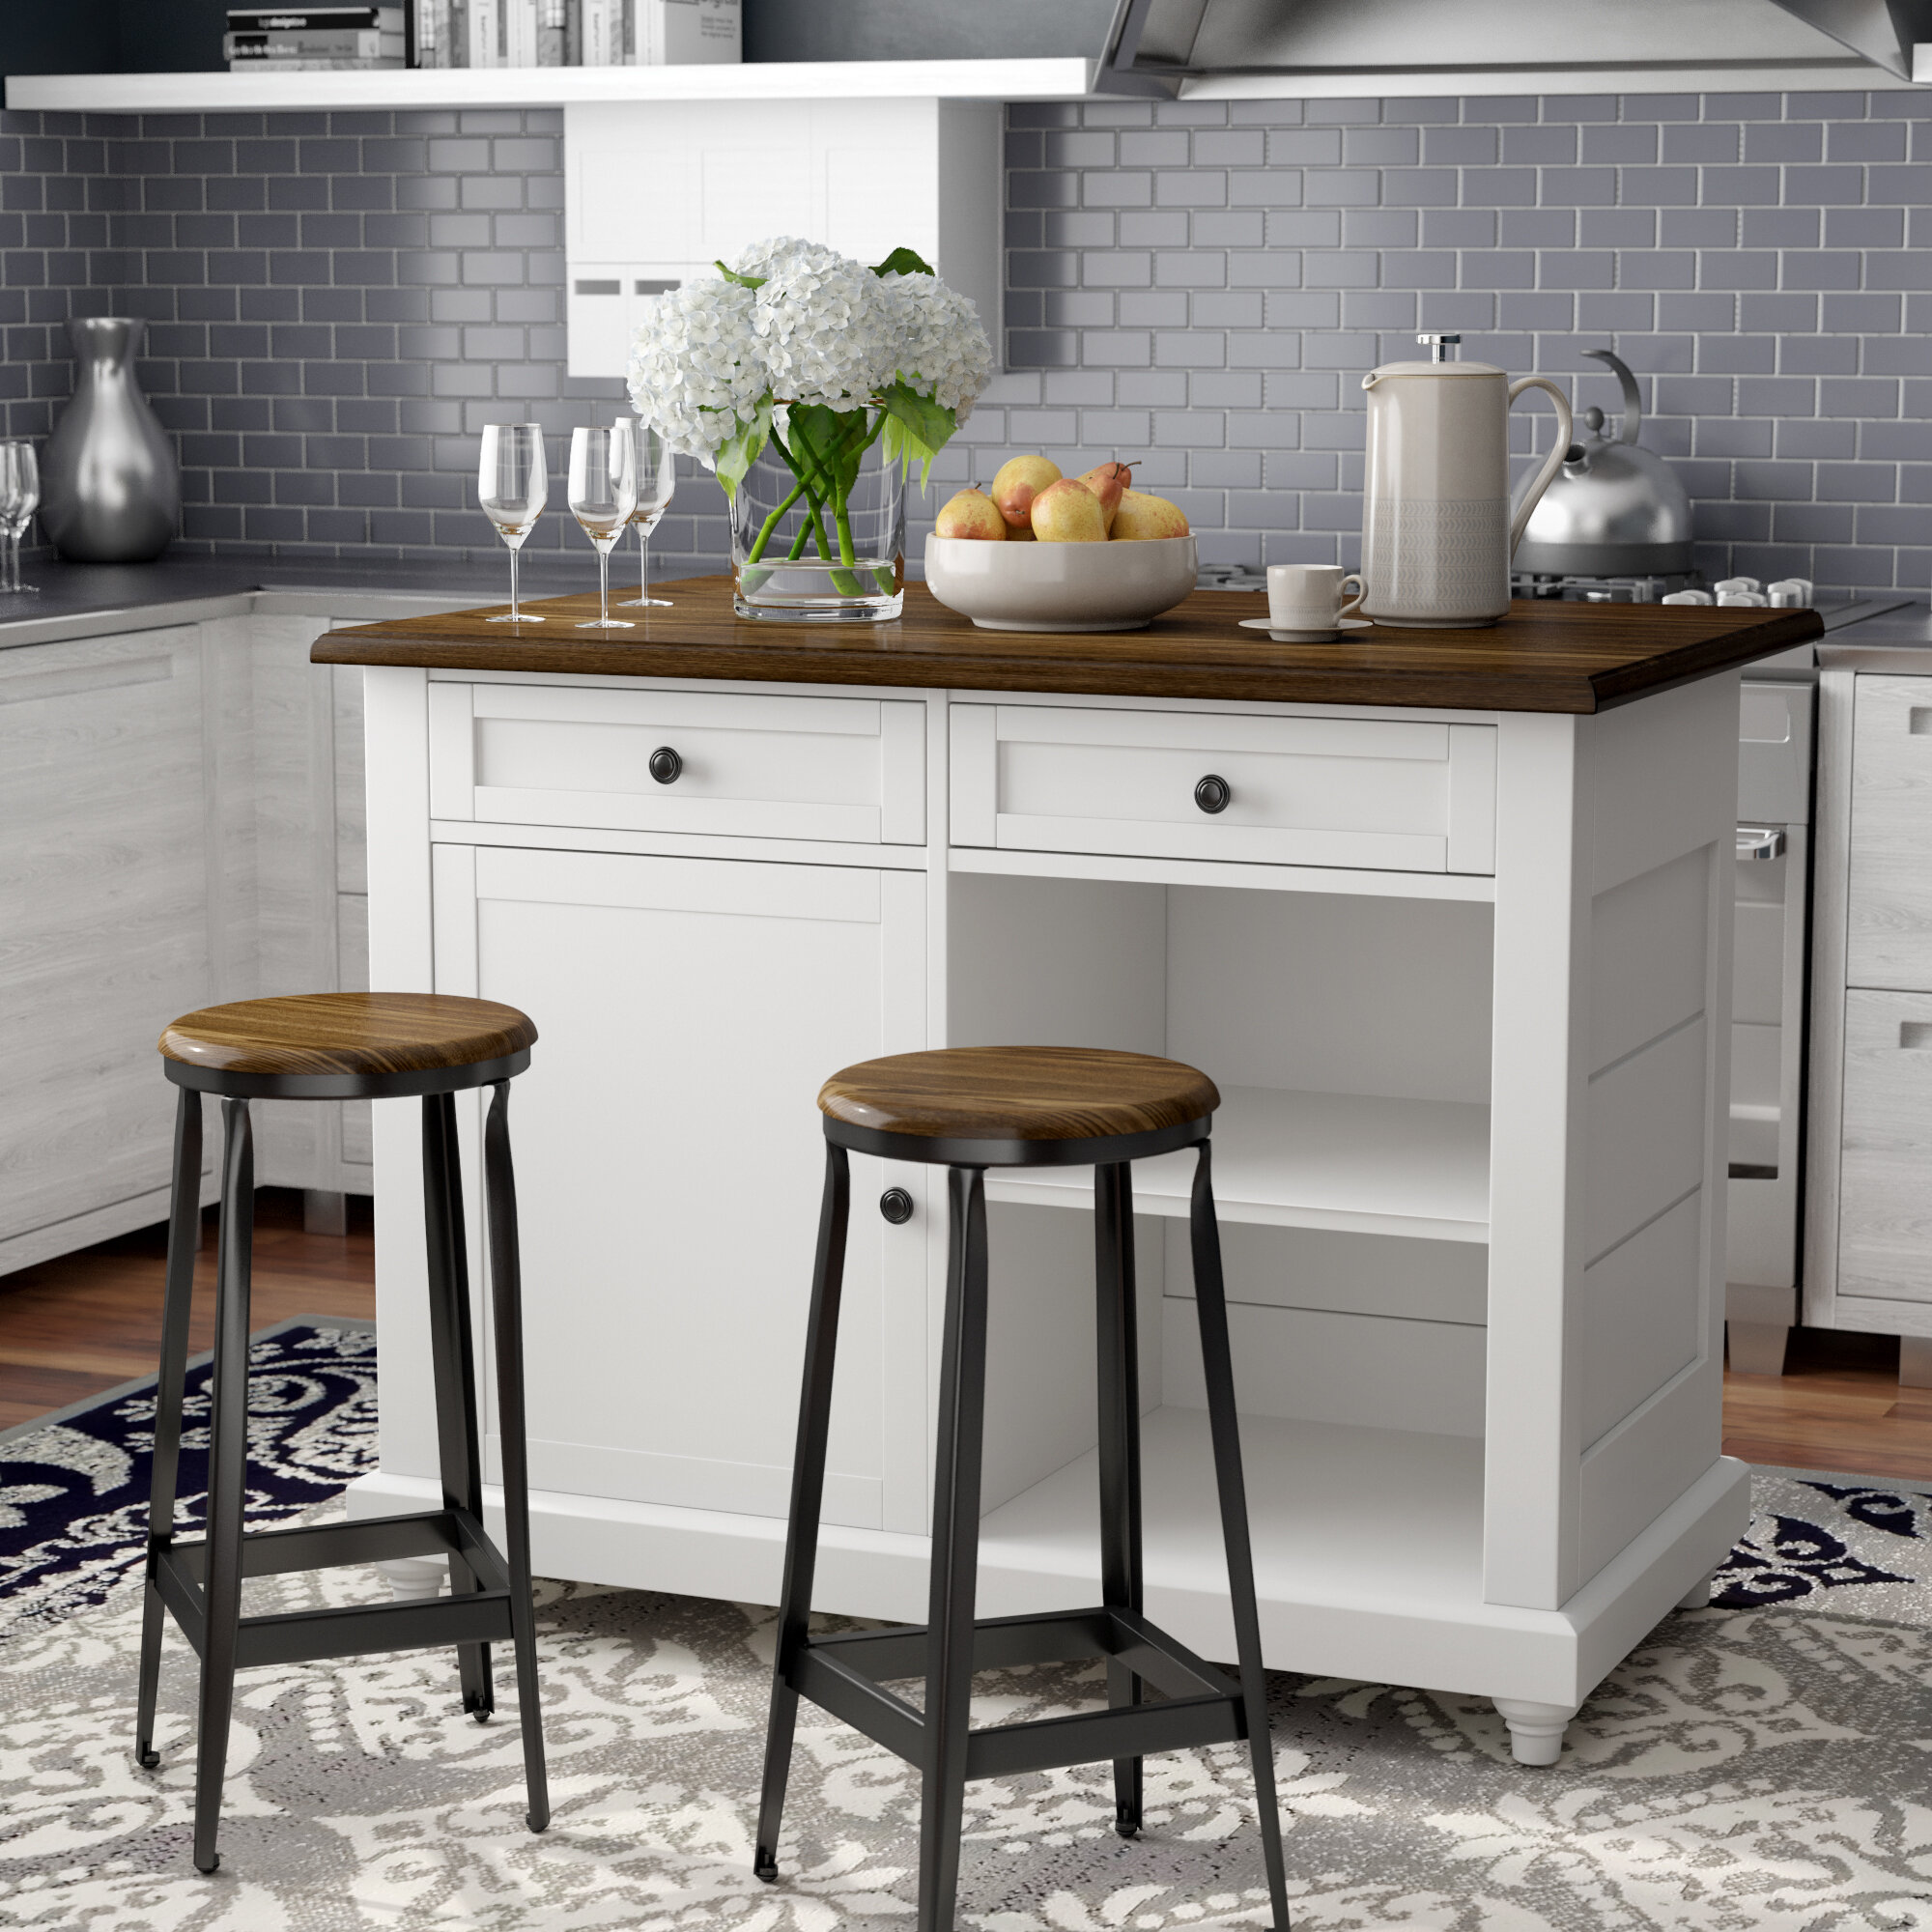 Wayfair Kitchen Islands With Seating You Ll Love In 2021